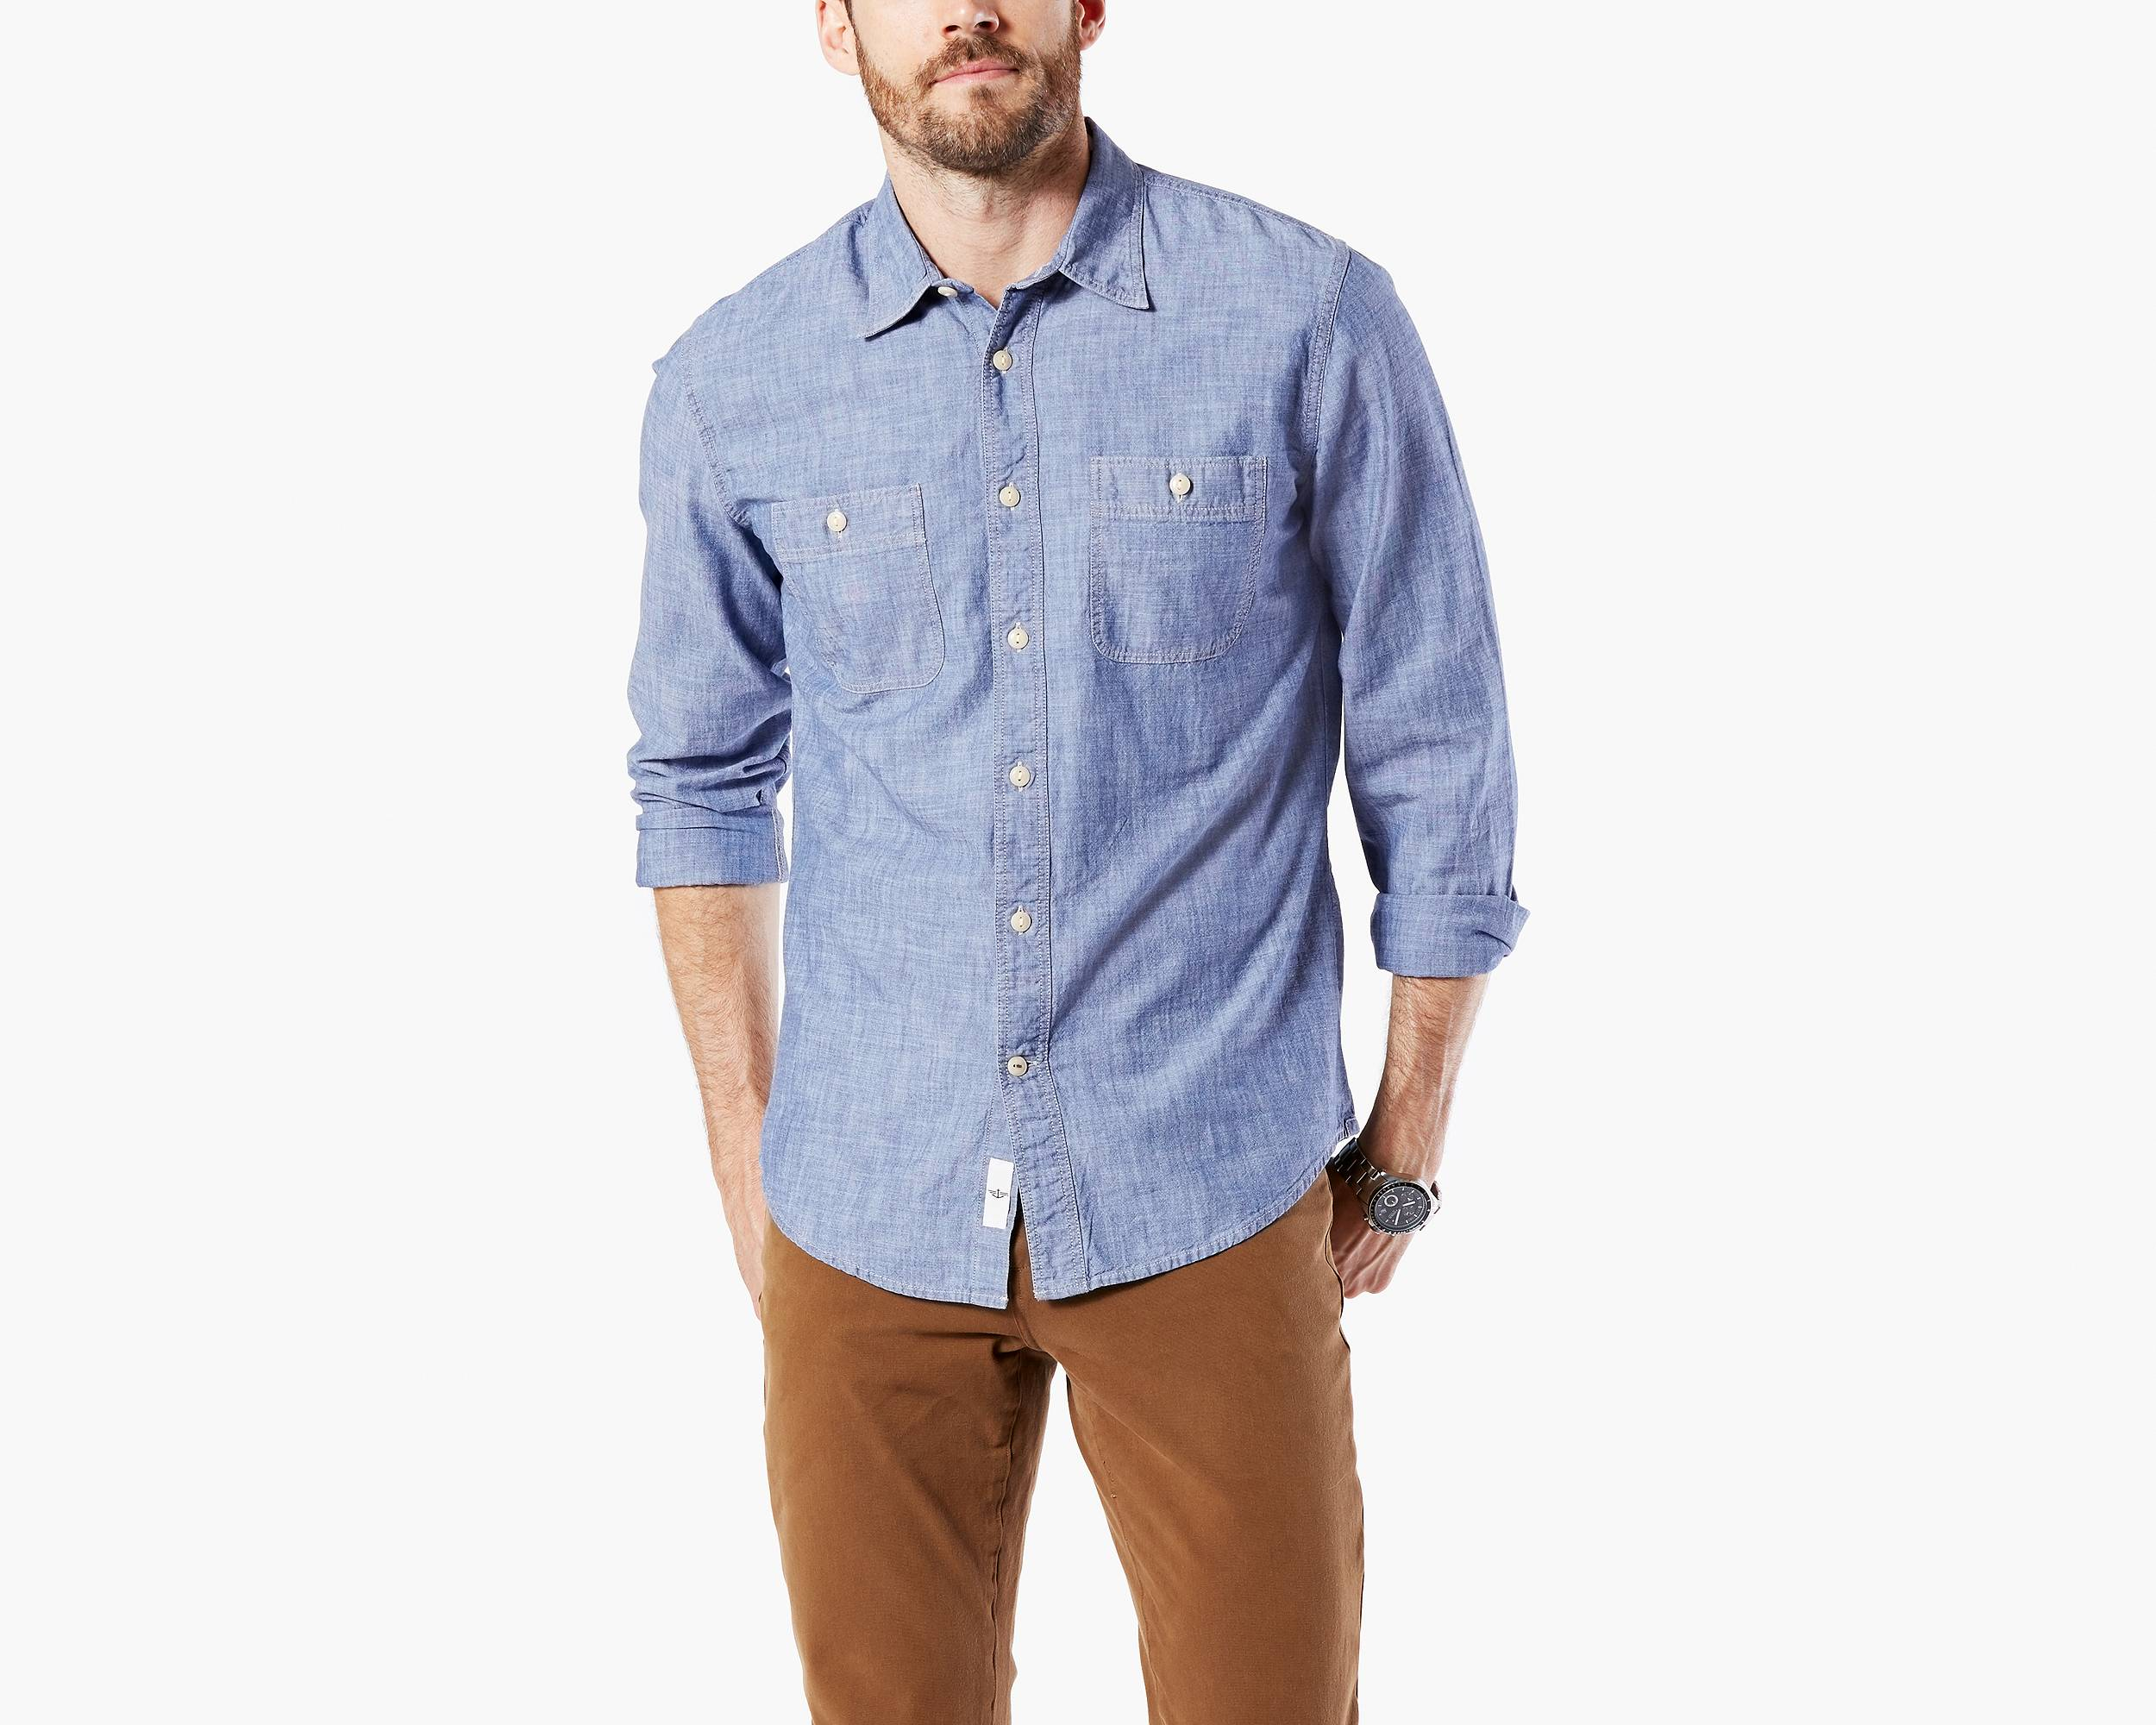 Mens Summer Shirts | Artee Shirt